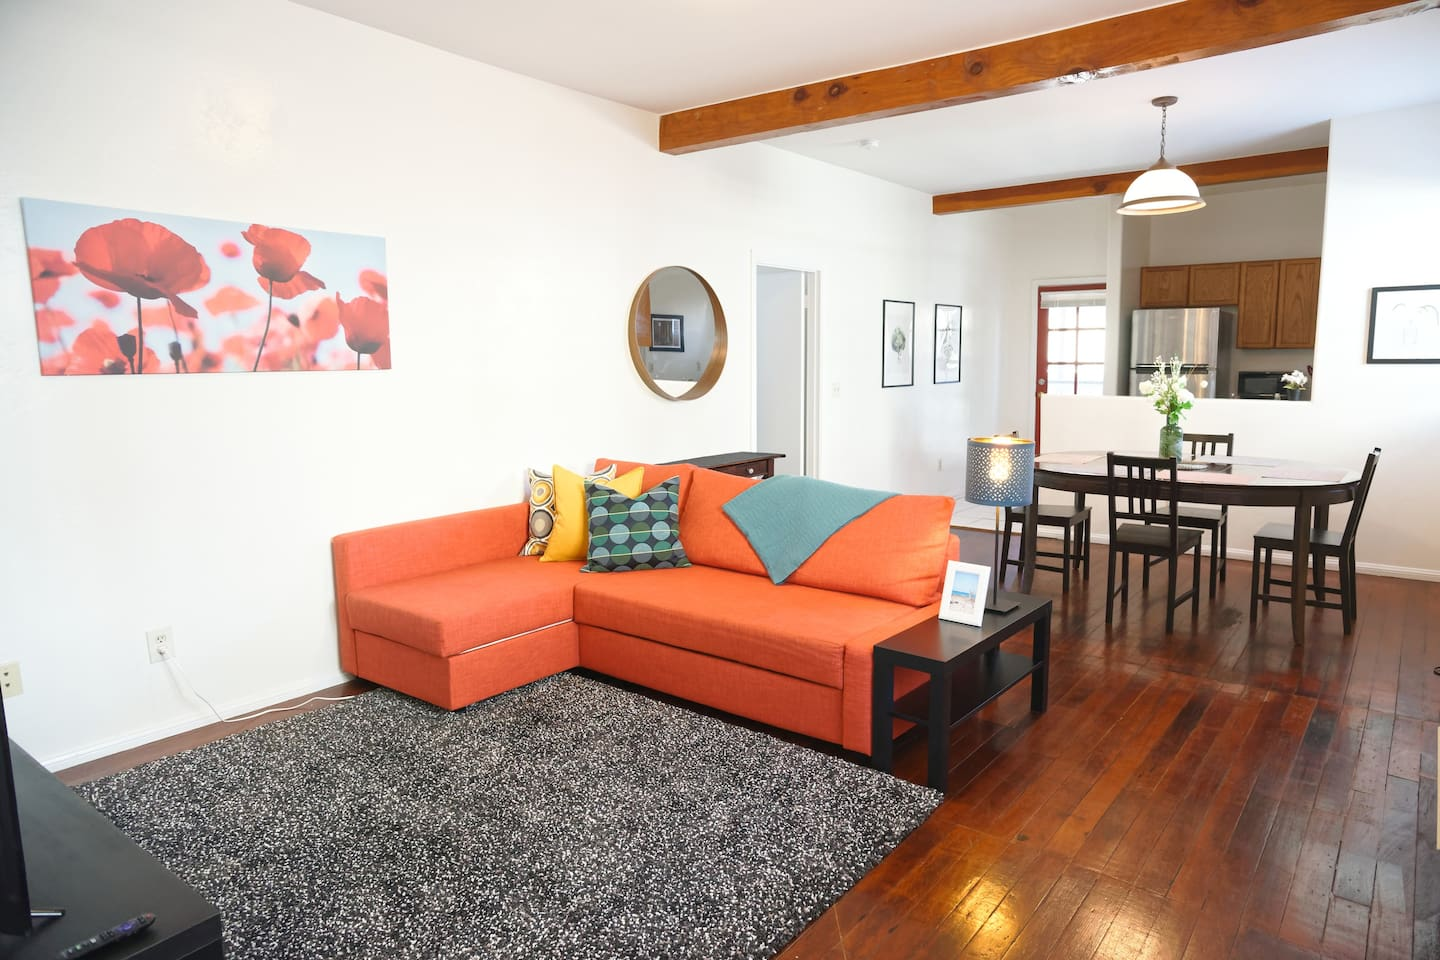 Spacious, bright and super-comfortable: 2 bedroom and 2 bathroom home away from home